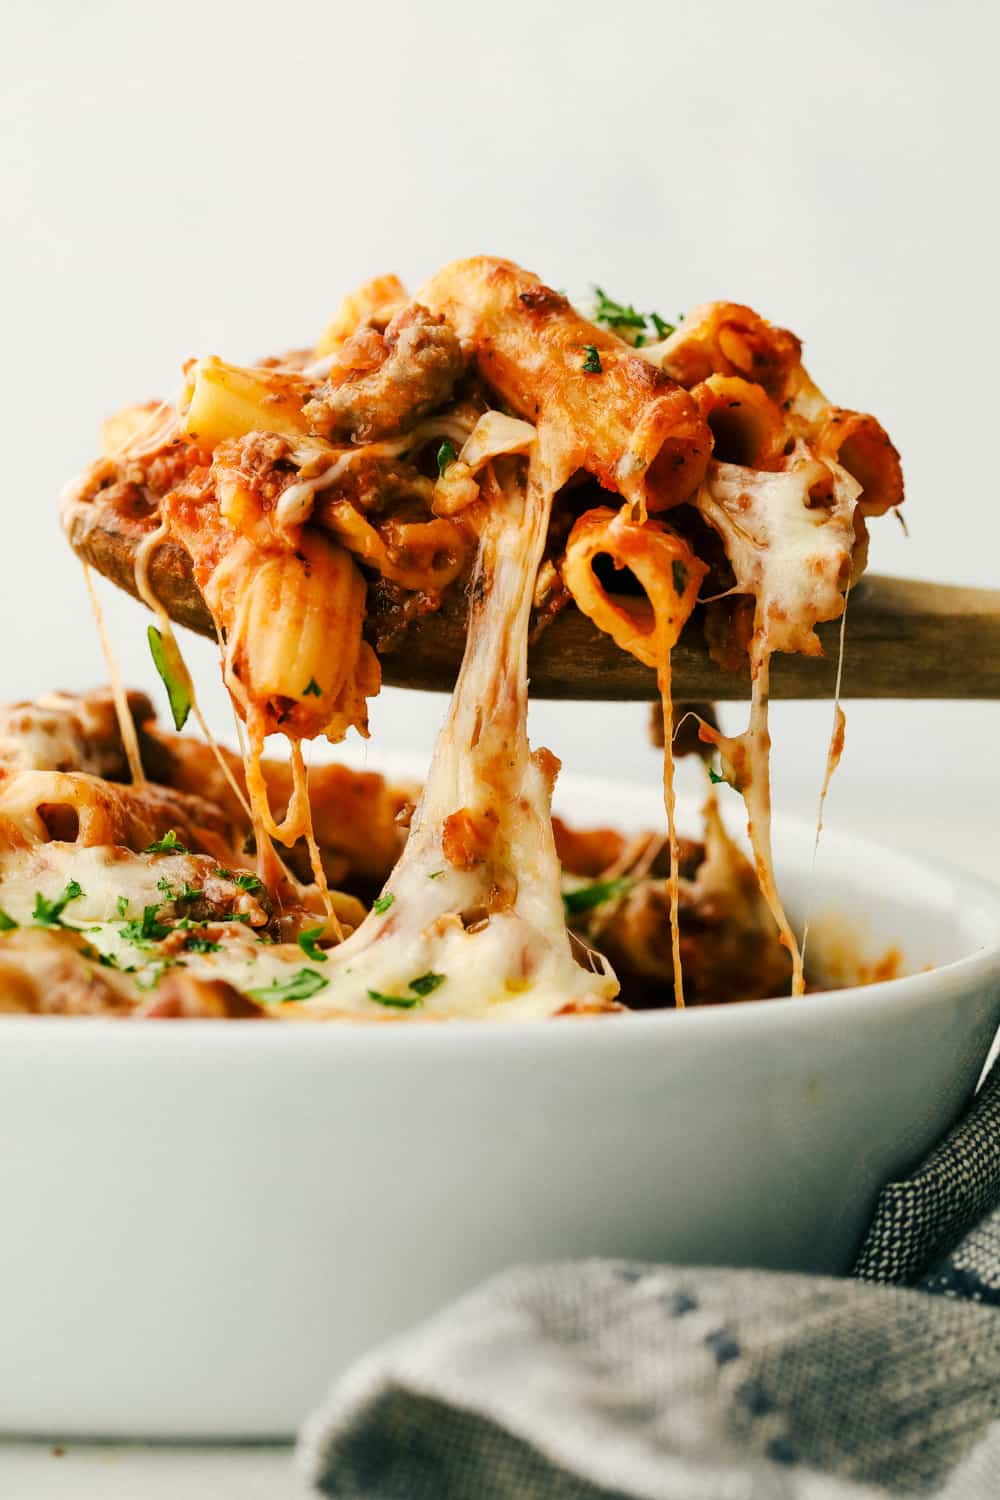 Baked rigatoni being spooned out of a bowl.